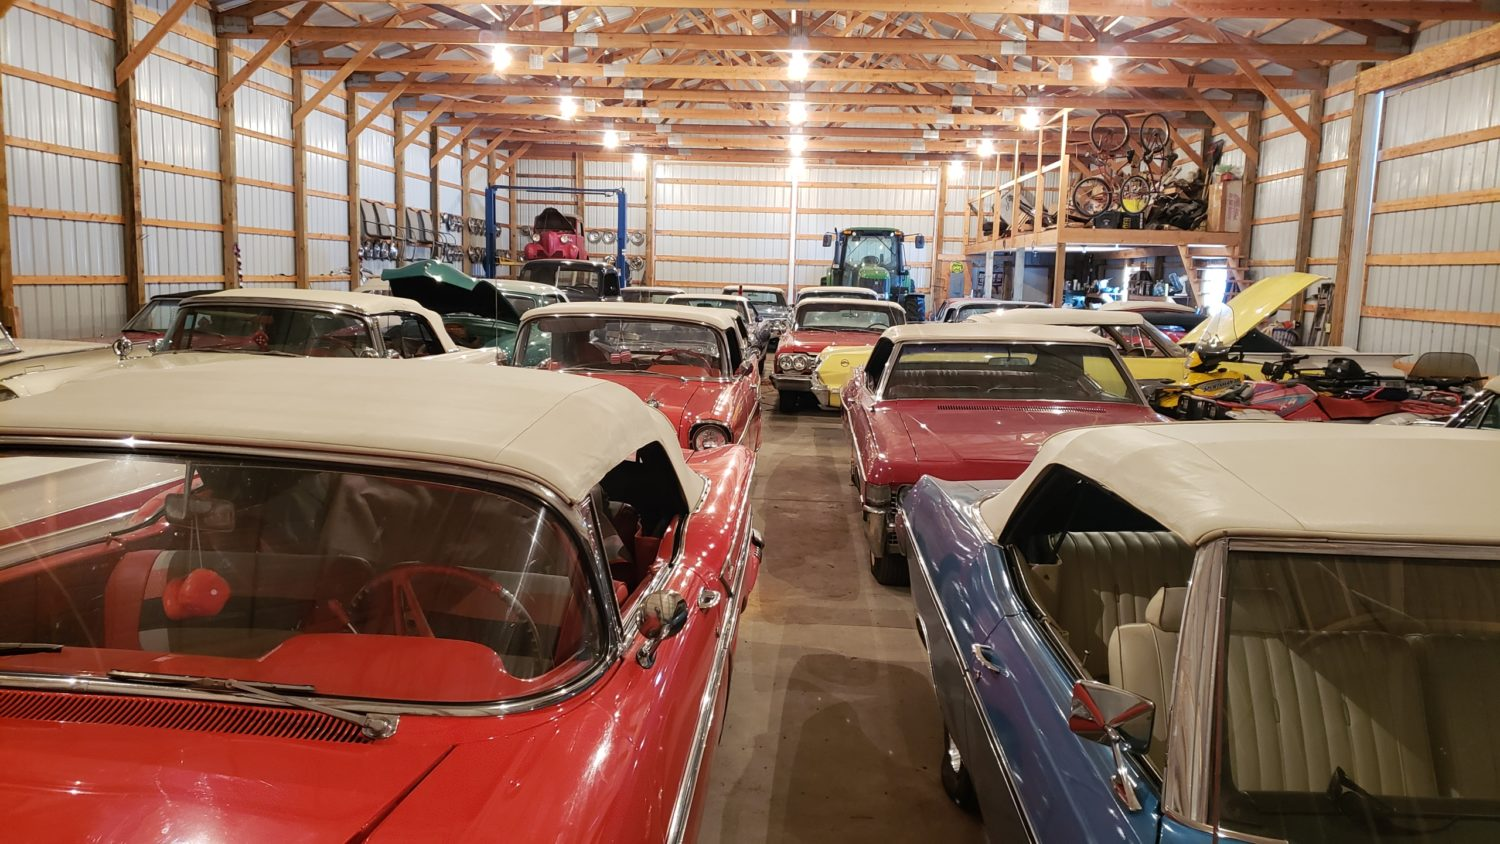 Fabulous Convertibles-Muscle- Antique Tractors & More! The Windels Collection LIVE ONSITE & Online BIdding - image 3